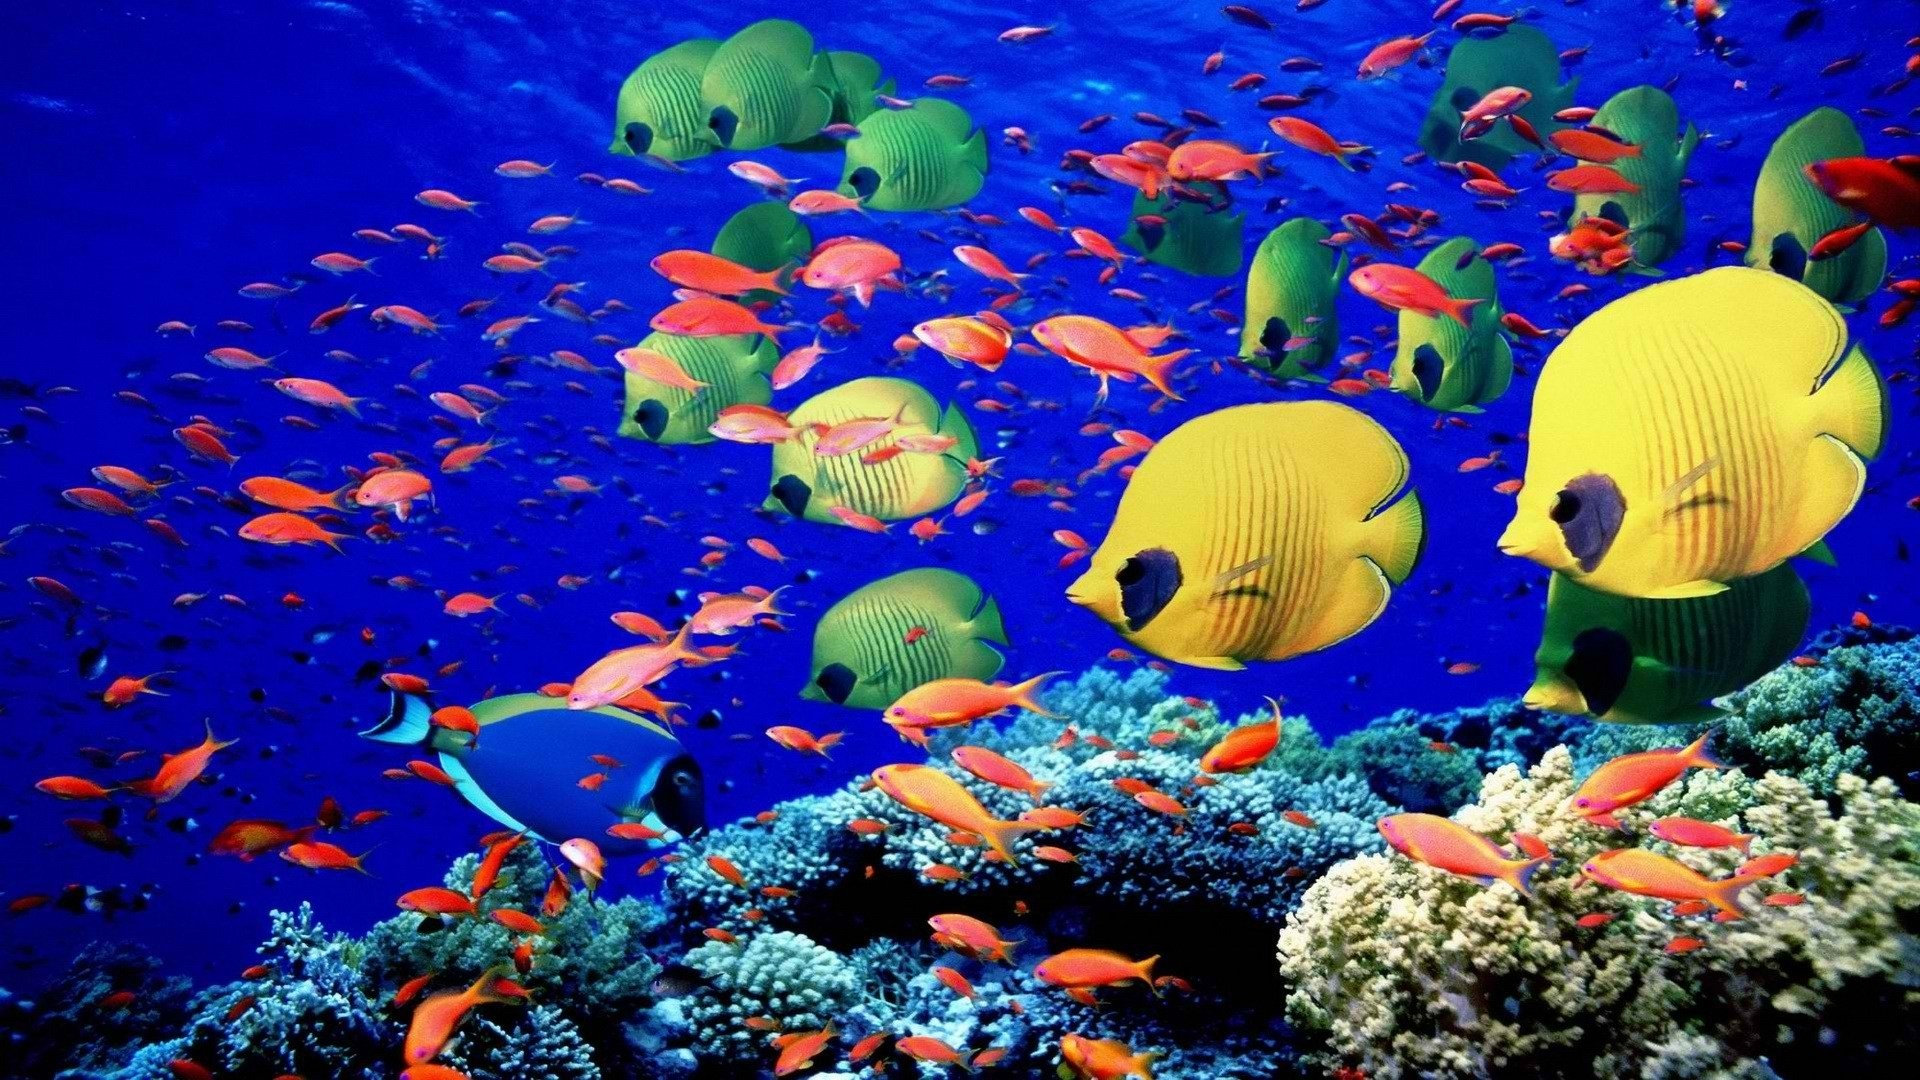 1920x1080 Colorful Coral Reef Wallpaper Full HD #vbp